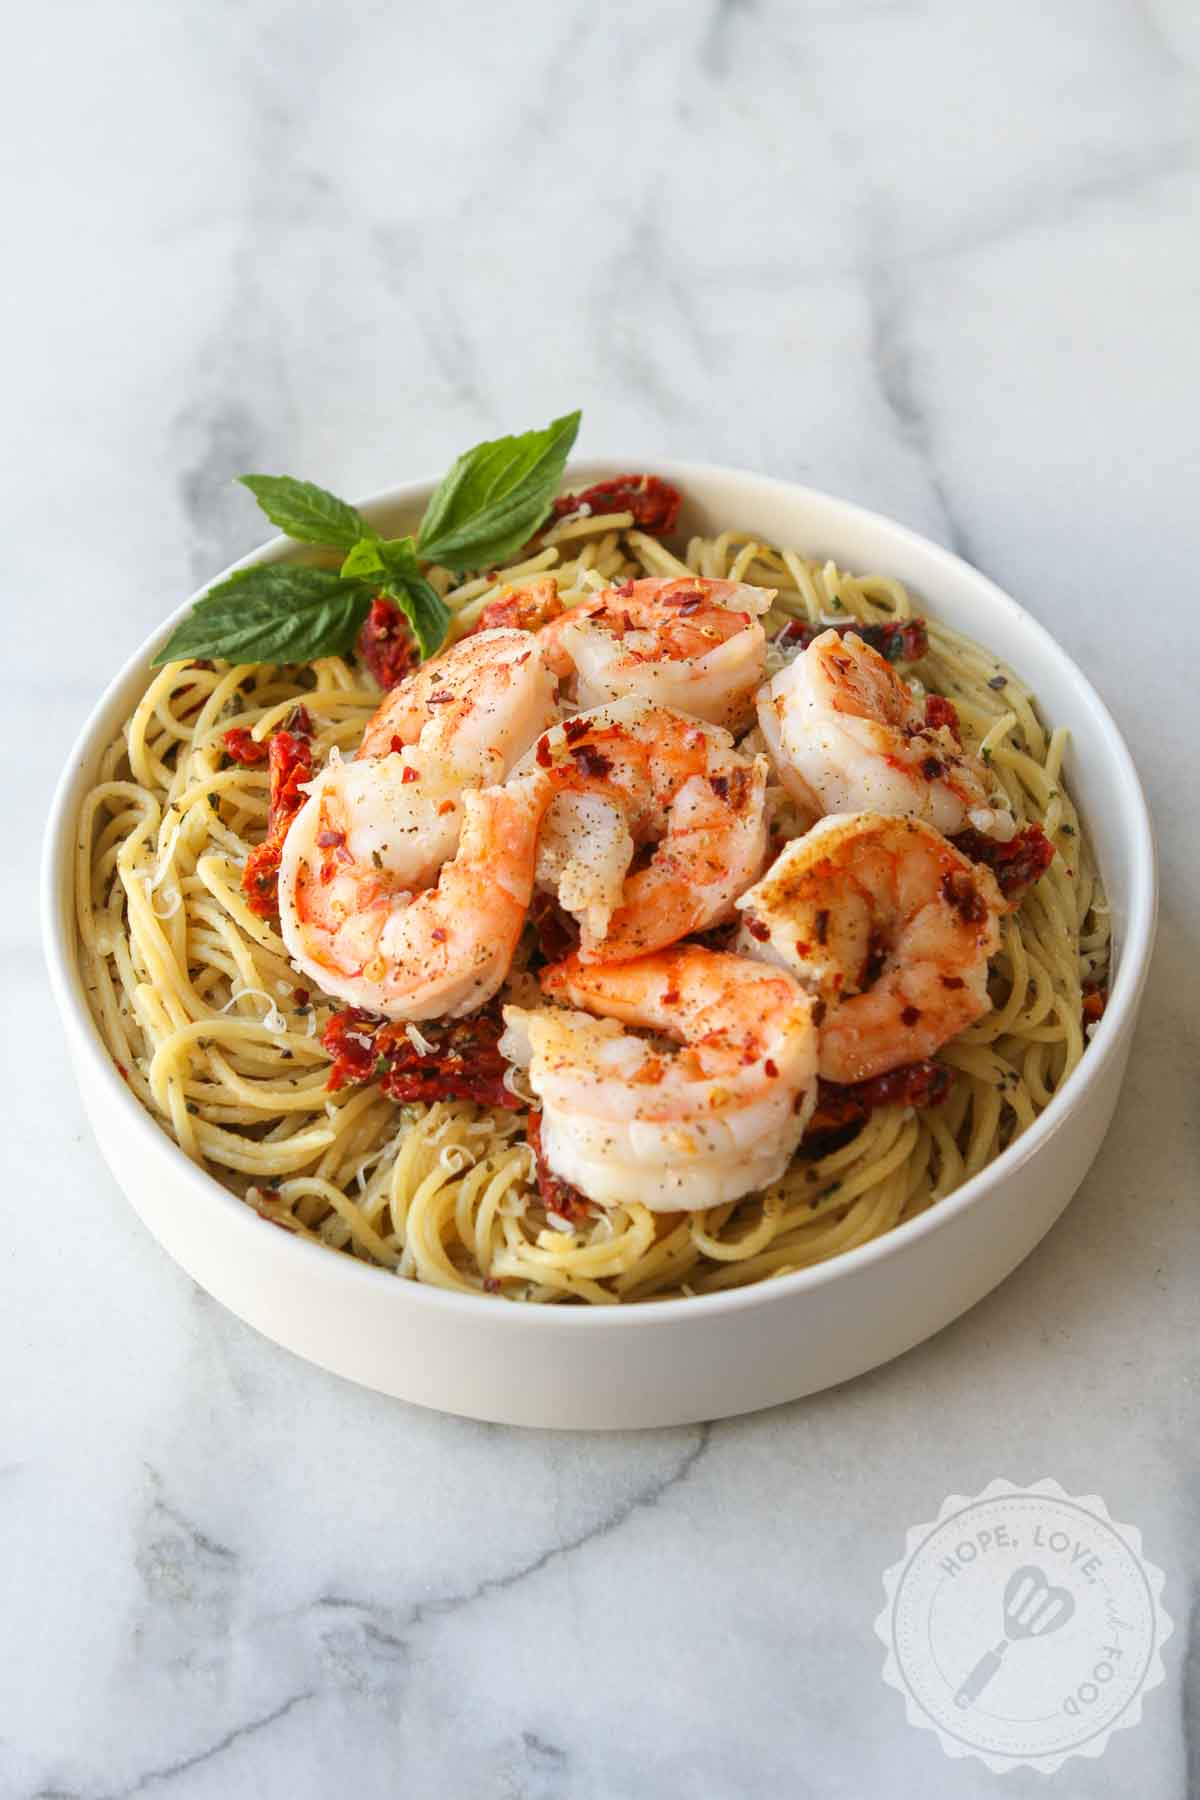 Shrimp on garlic pasta.